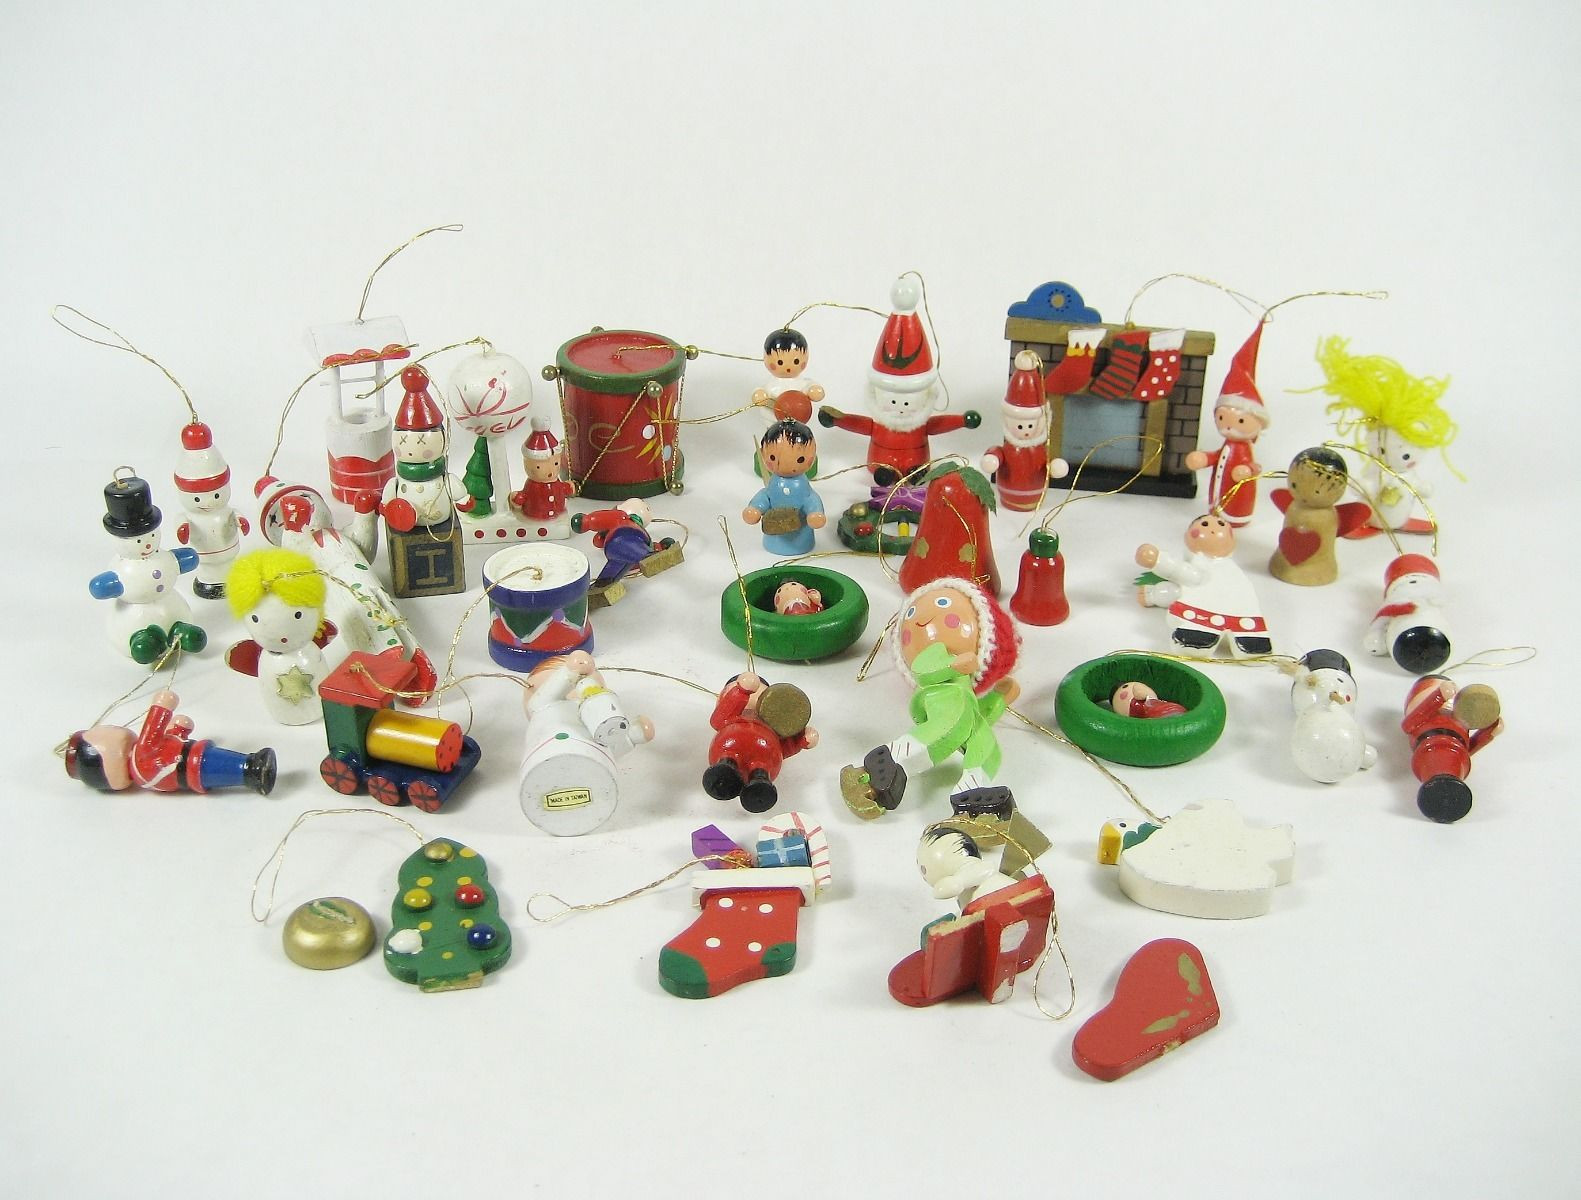 Lovely Mini Wooden Christmas Tree Decorations Miniature Christmas Decorations Of Fresh 50 Pictures Miniature Christmas Decorations